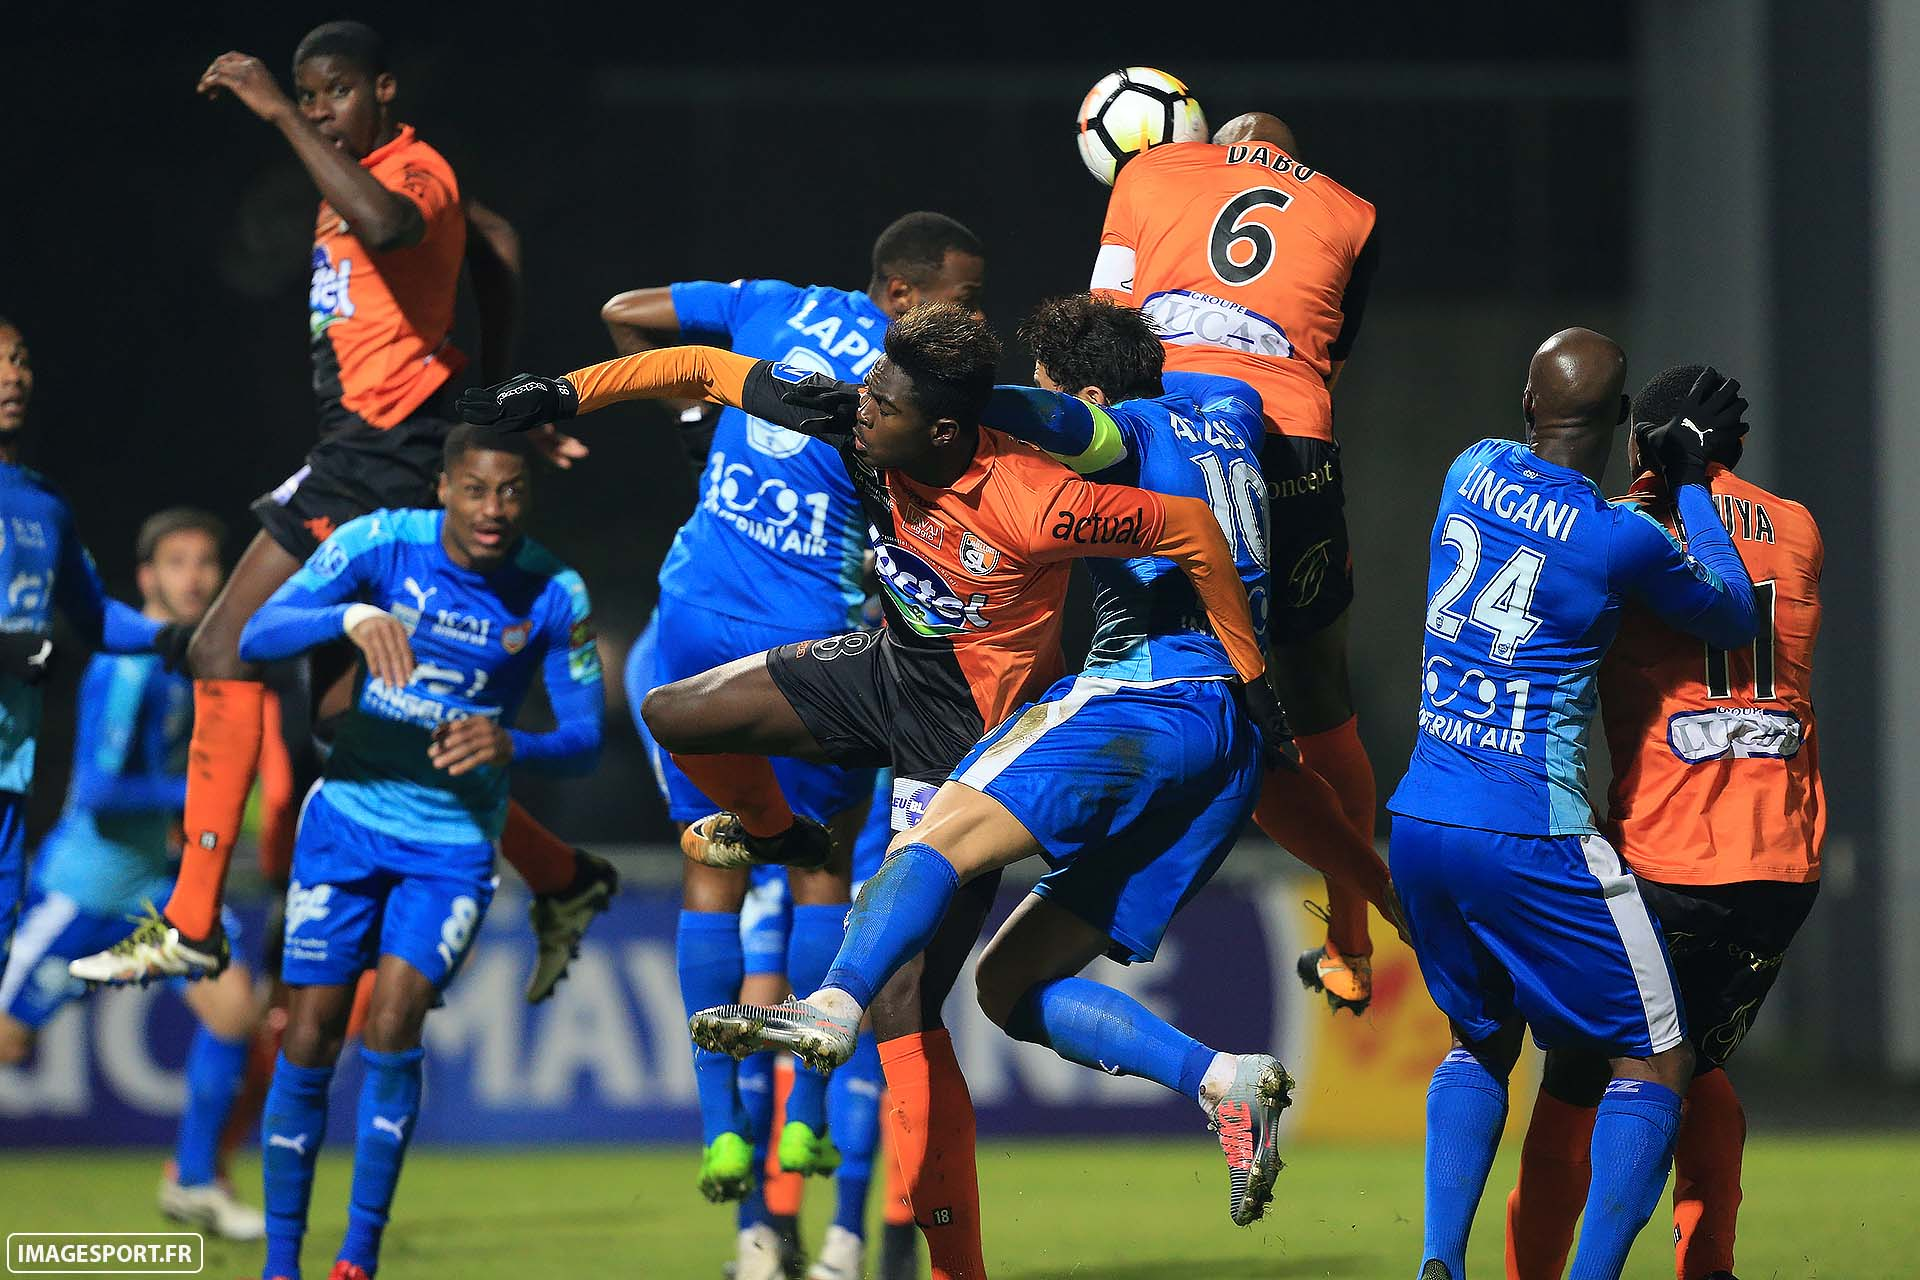 24-stade-lavallois-imagesport-solet